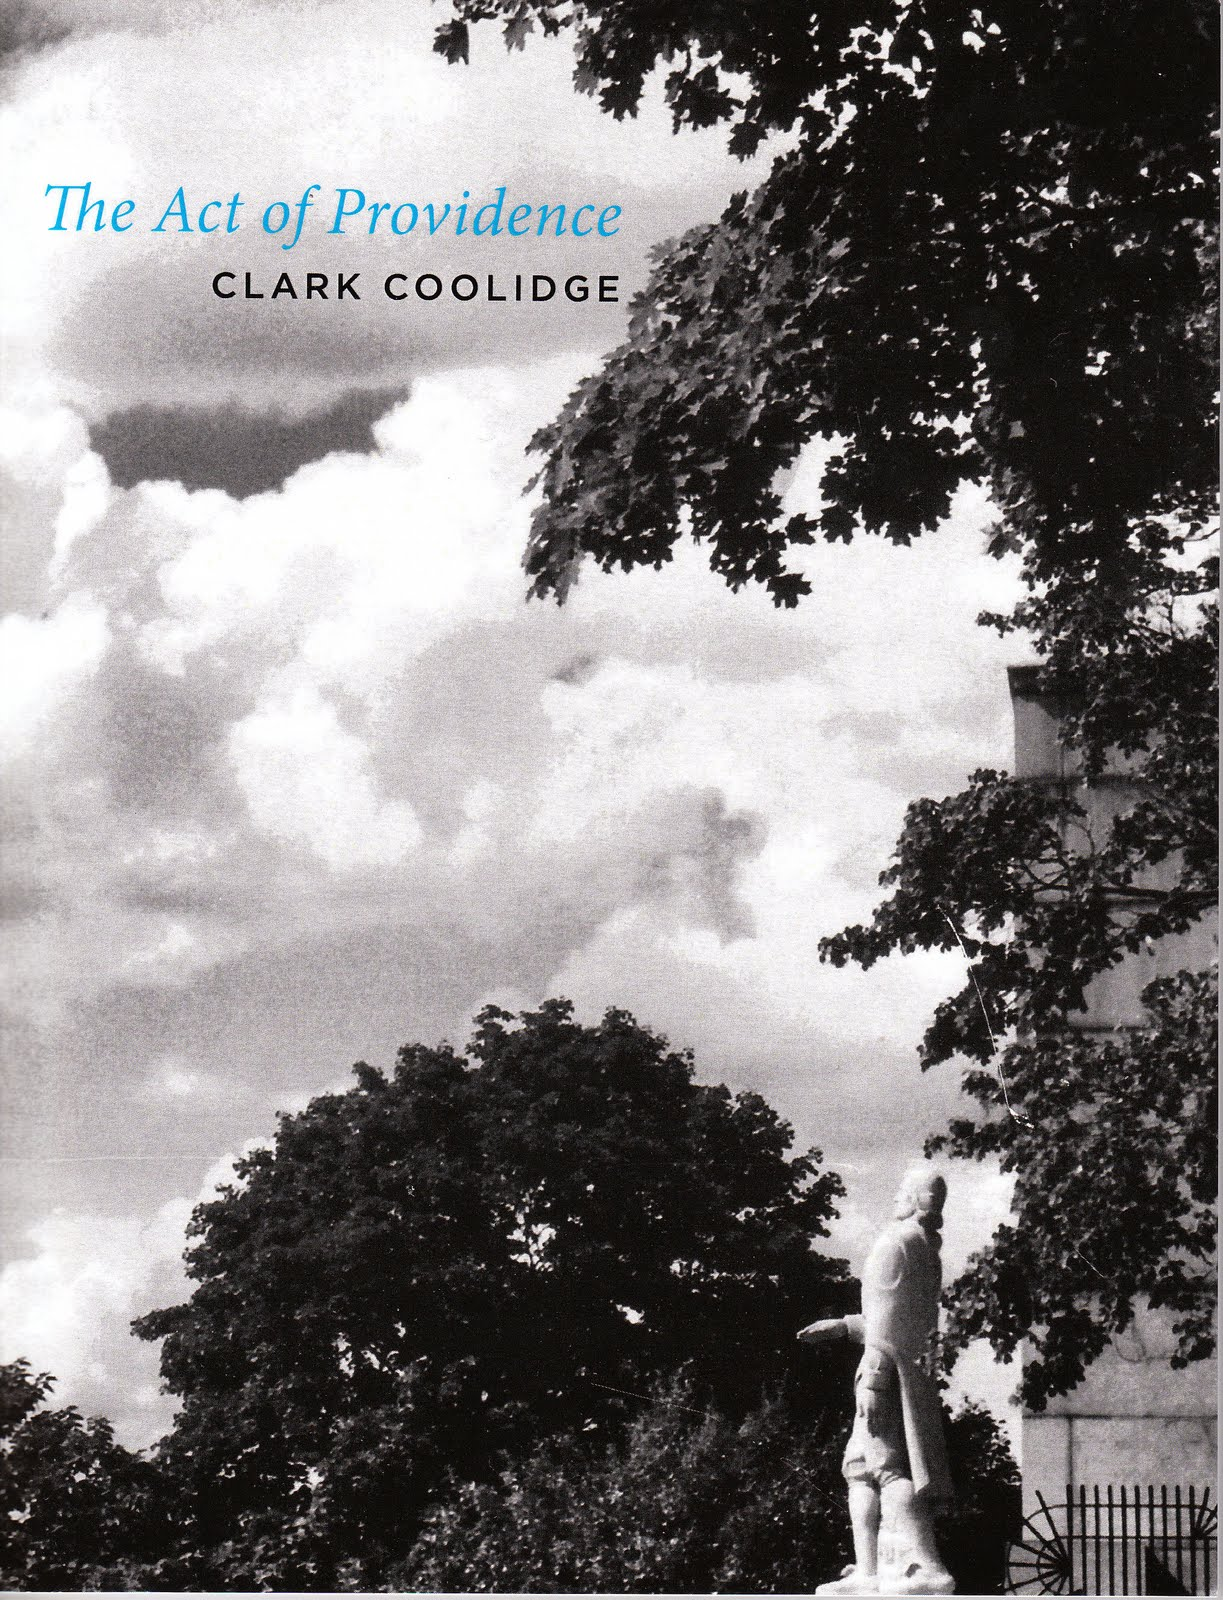 Clark Coolidge, The Act of Providence